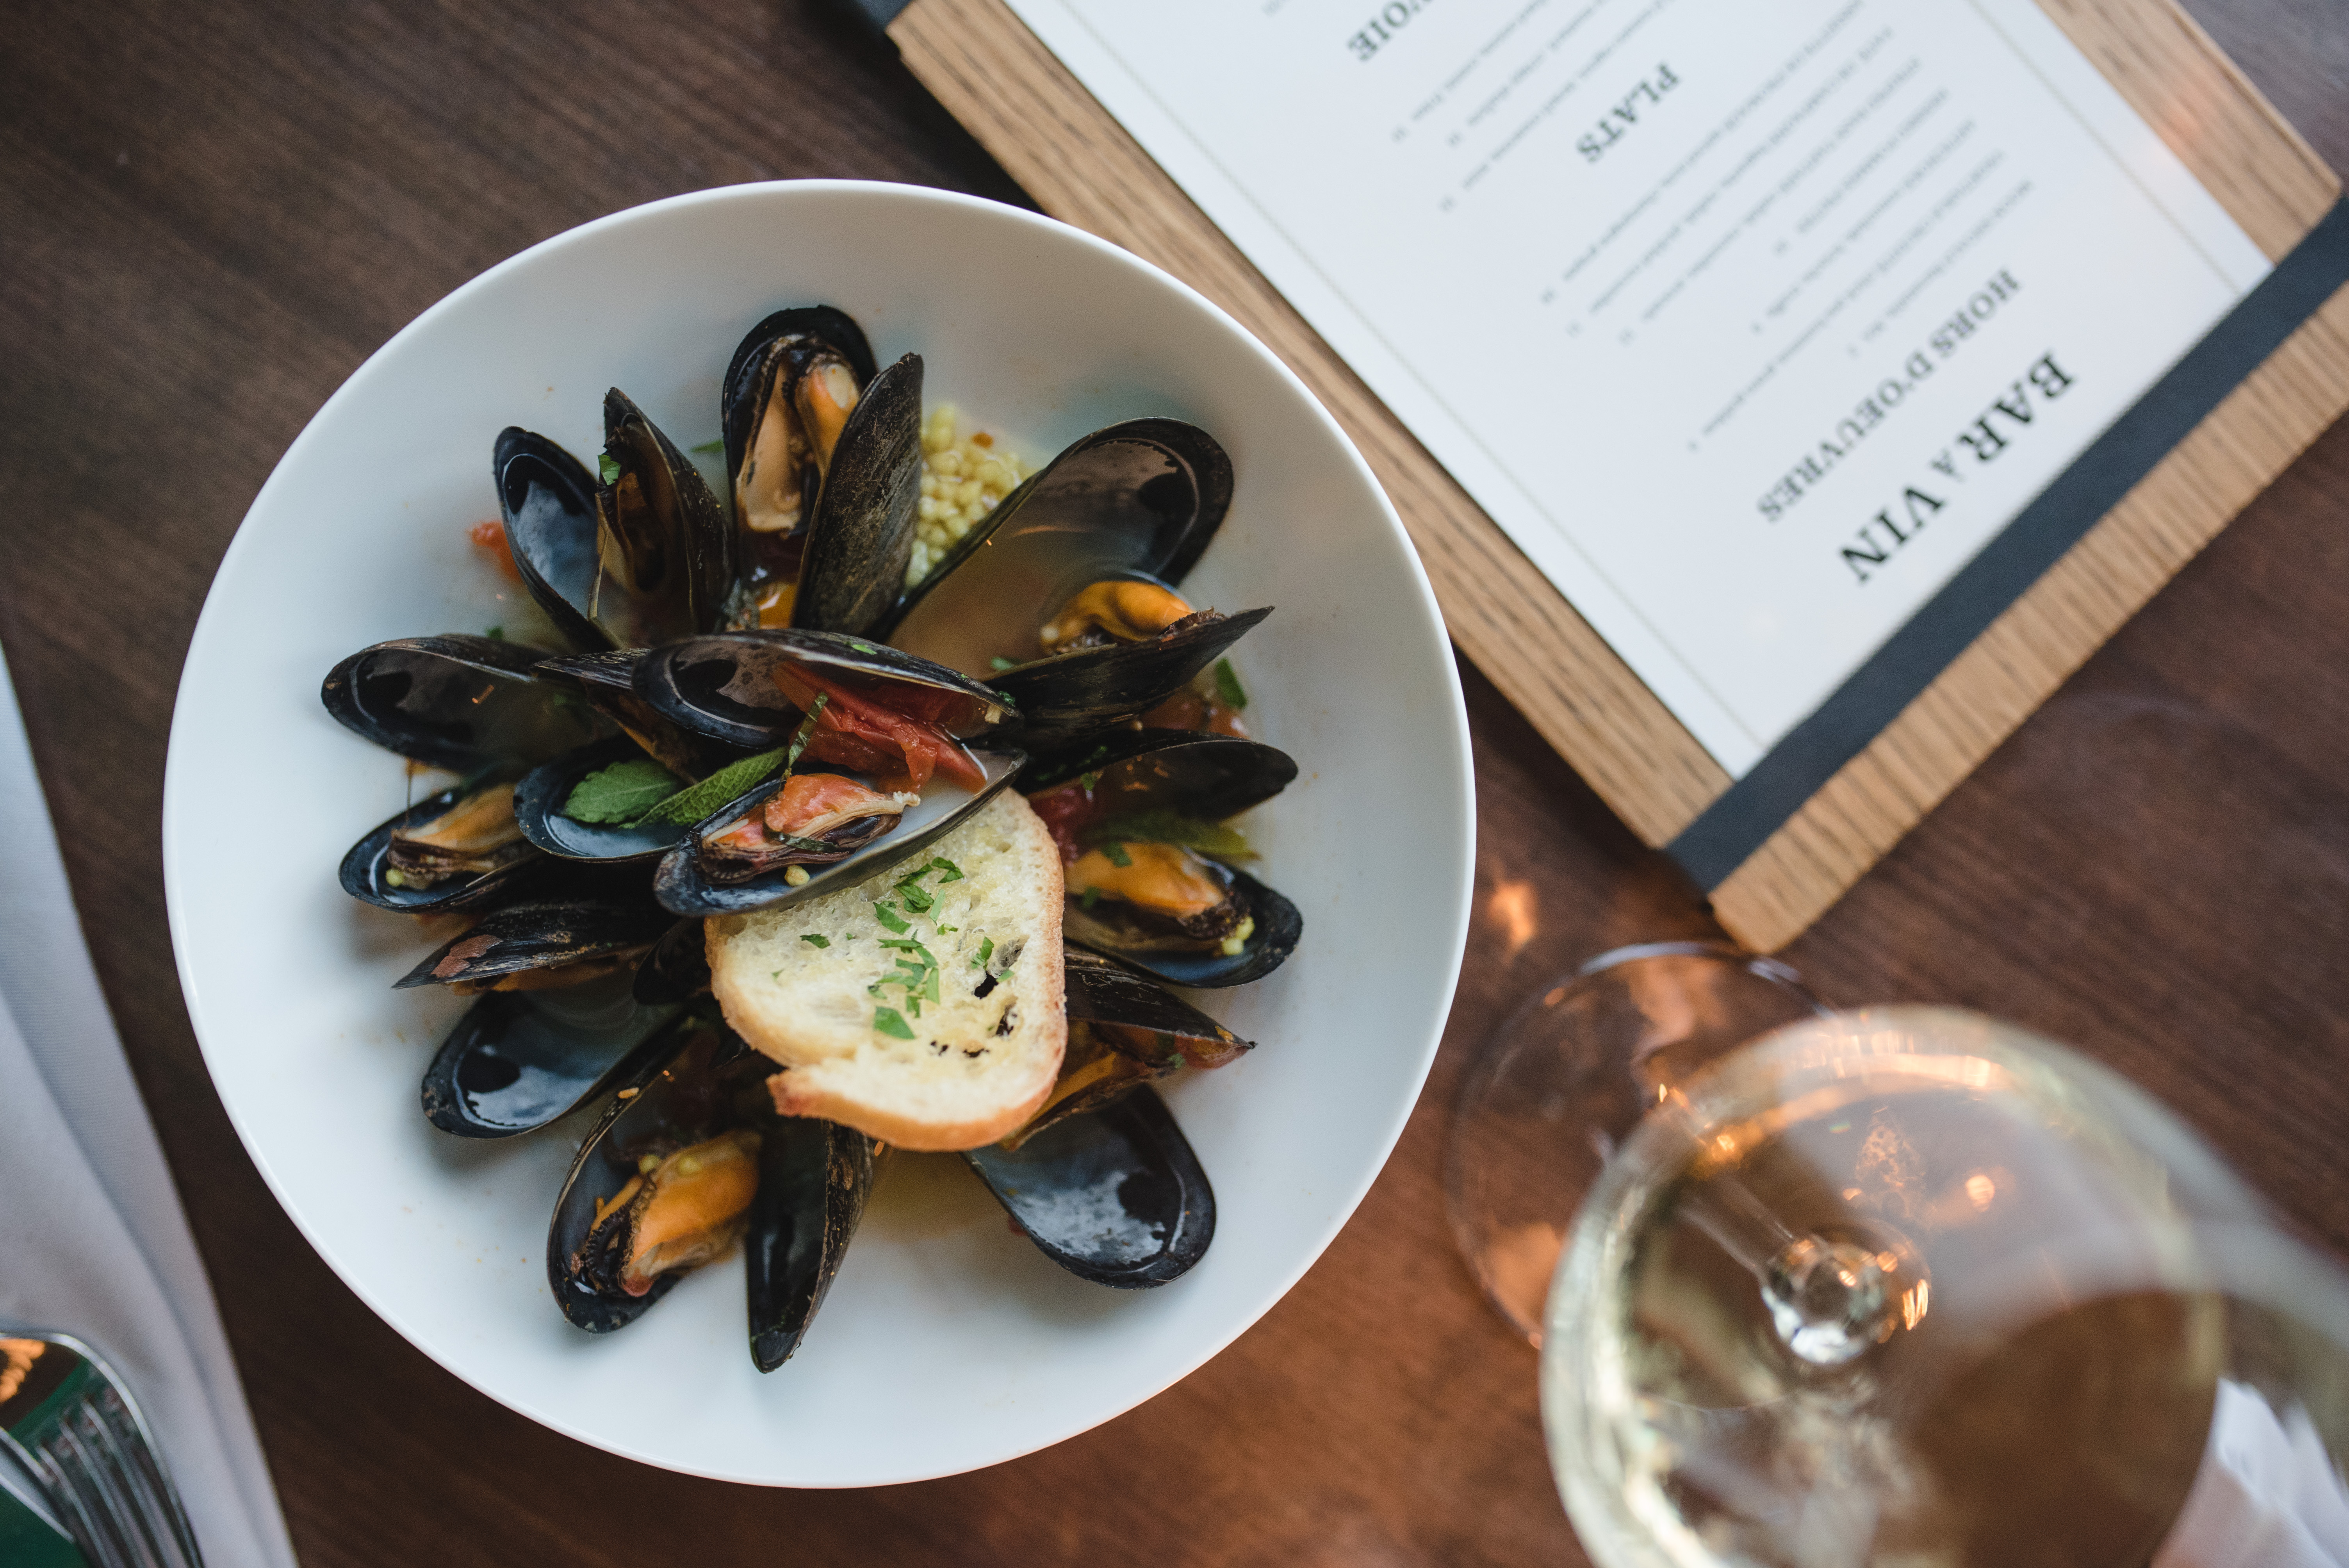 Steamed mussels at Les Sablons